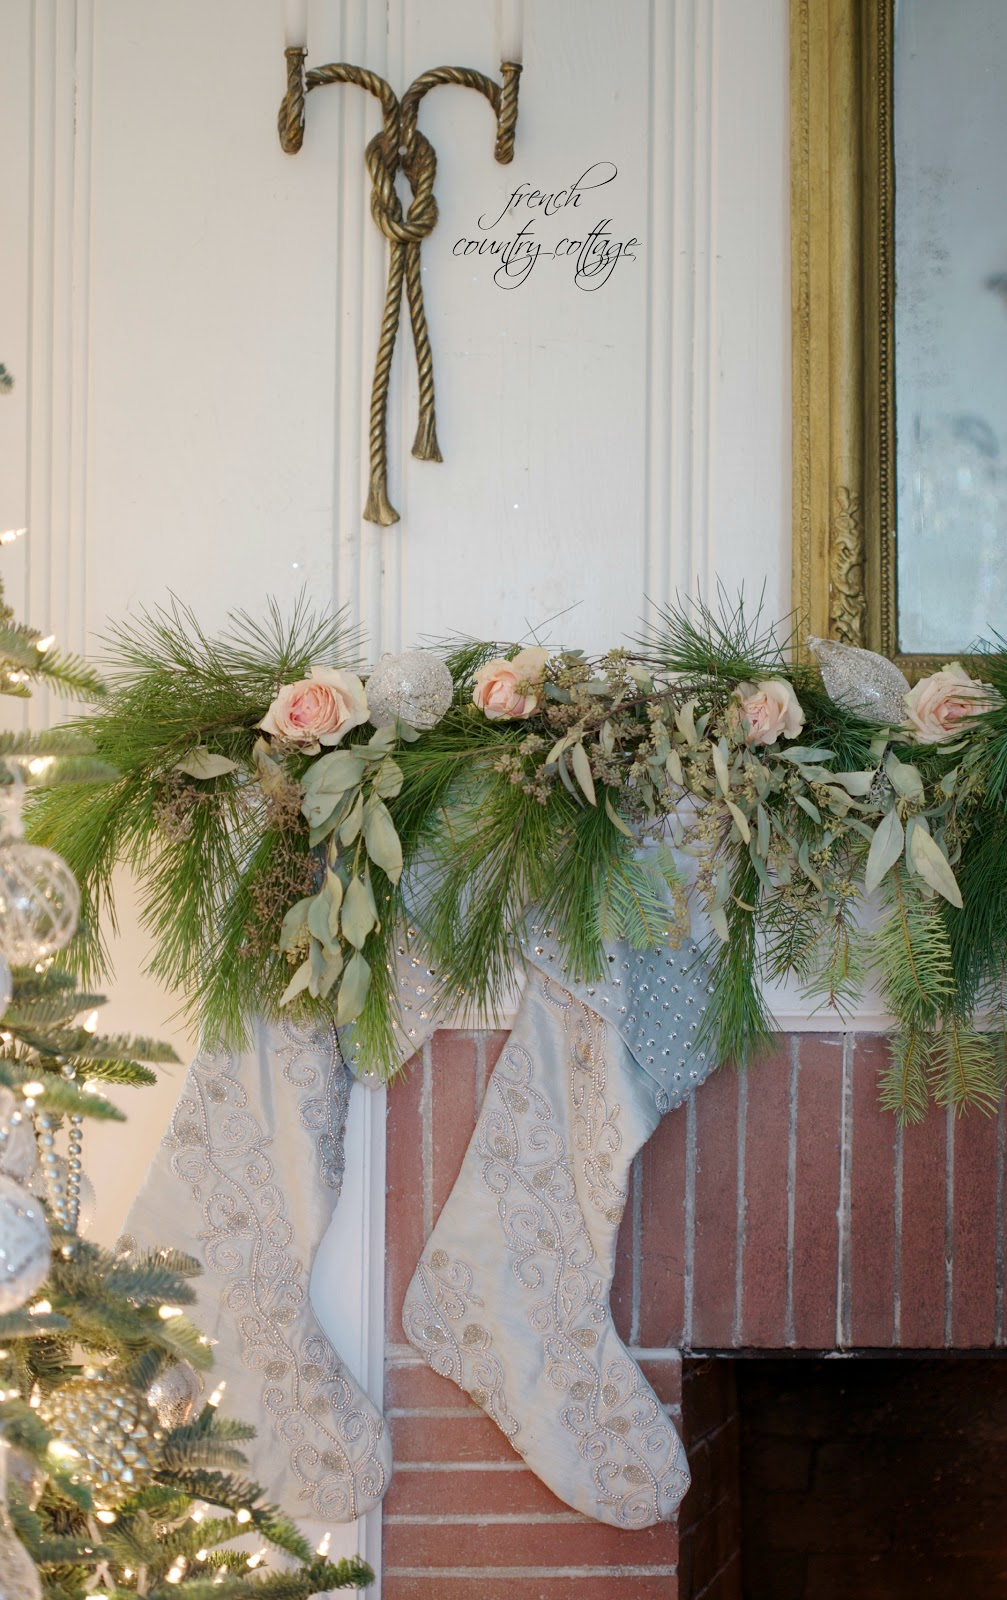 Flower Friday DIY Fresh Garland FRENCH COUNTRY COTTAGE